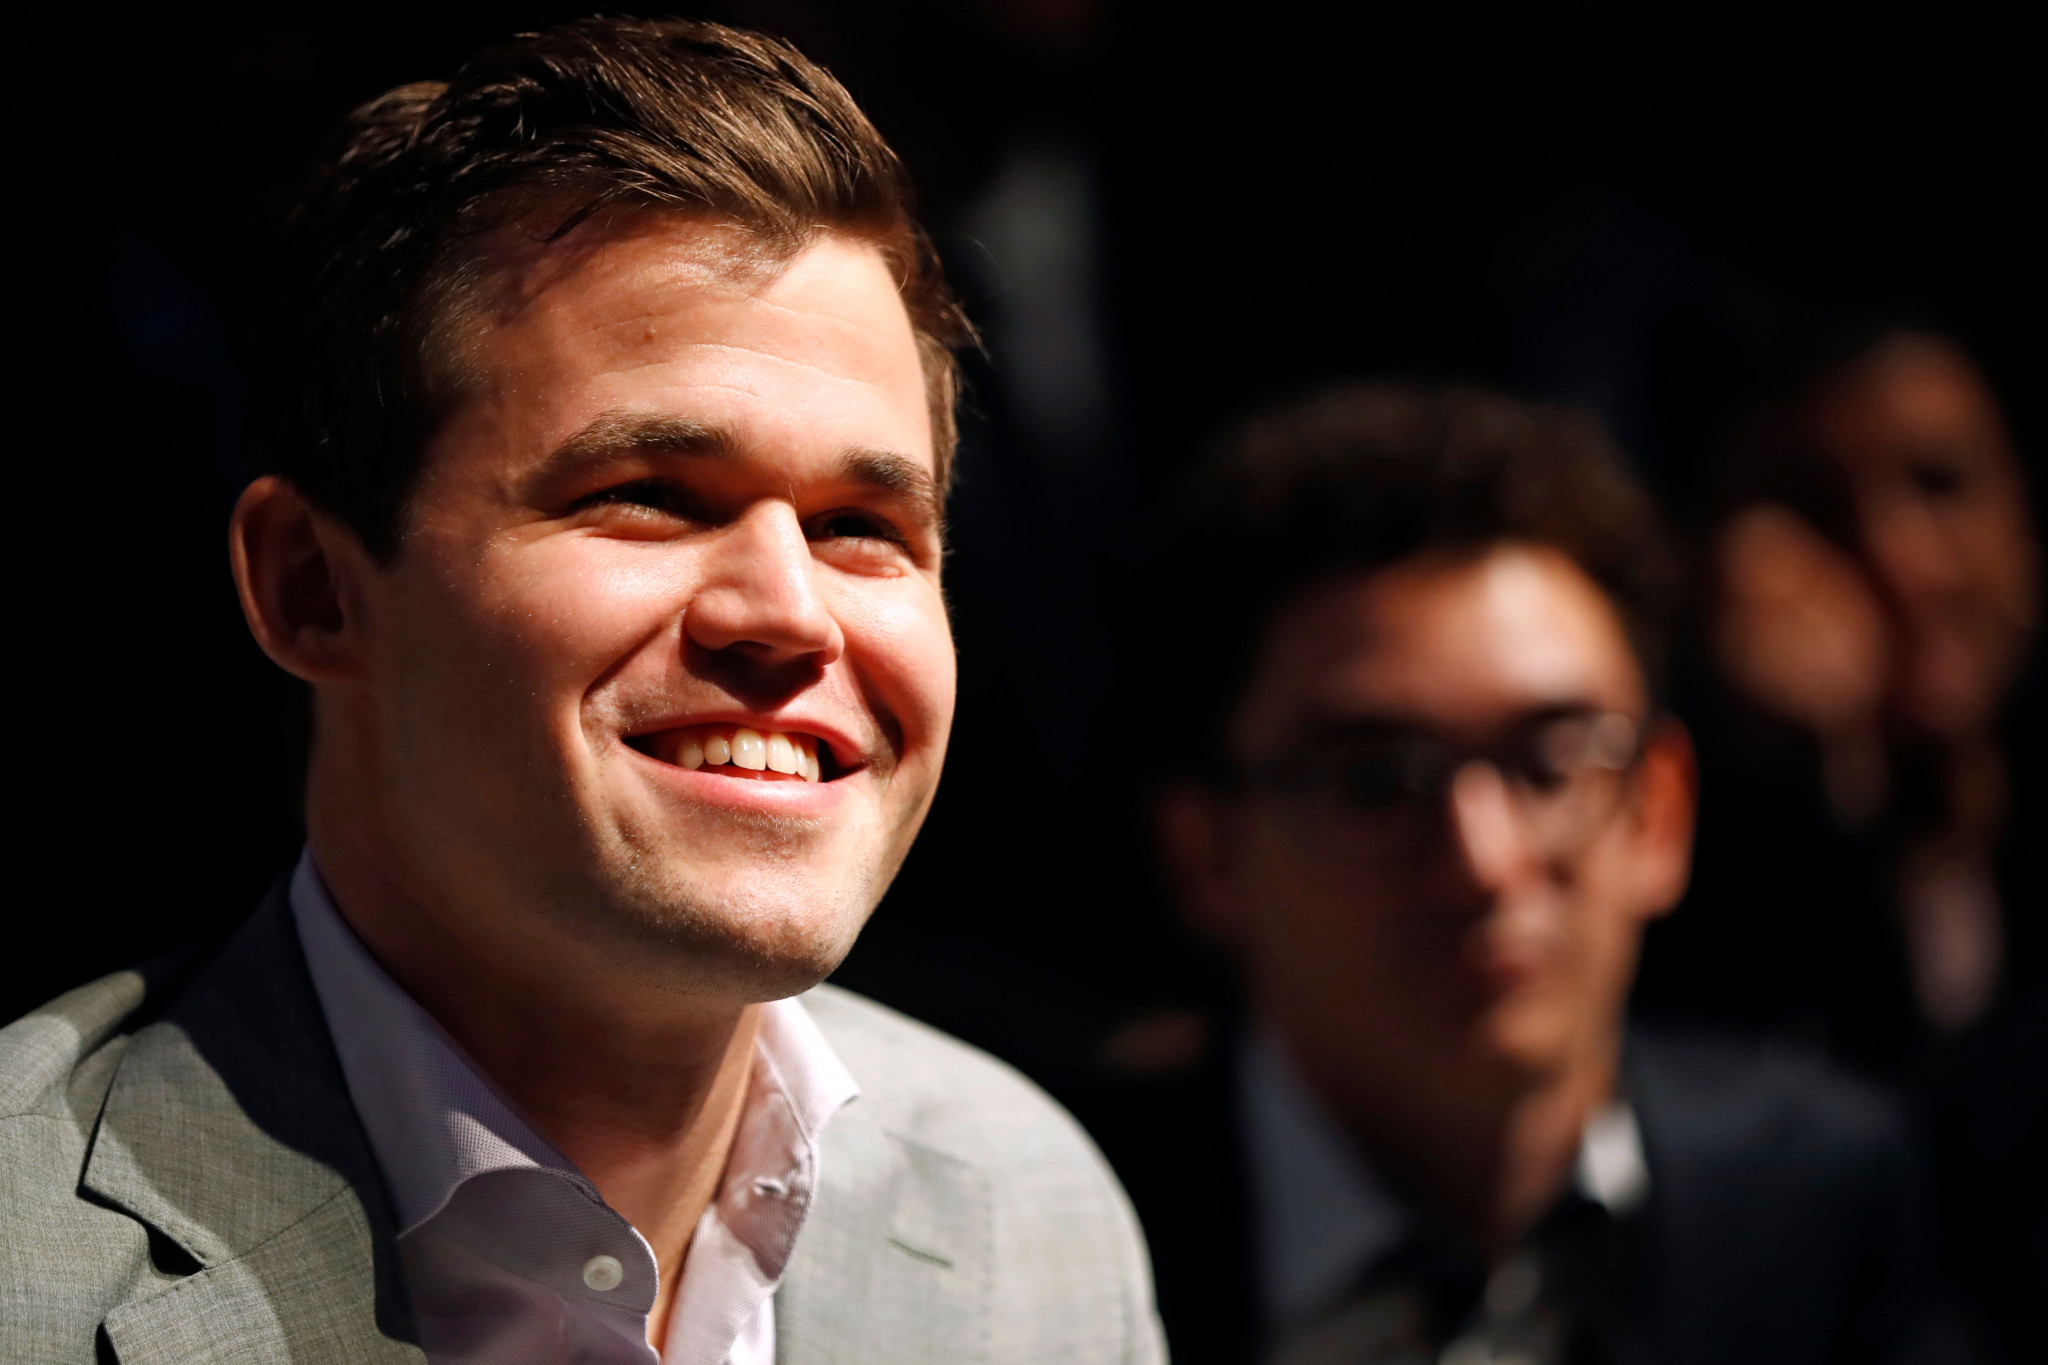 Norway's Magnus Carlsen won the World Chess Championship today after 12 draws forced a tie break ©Getty Images